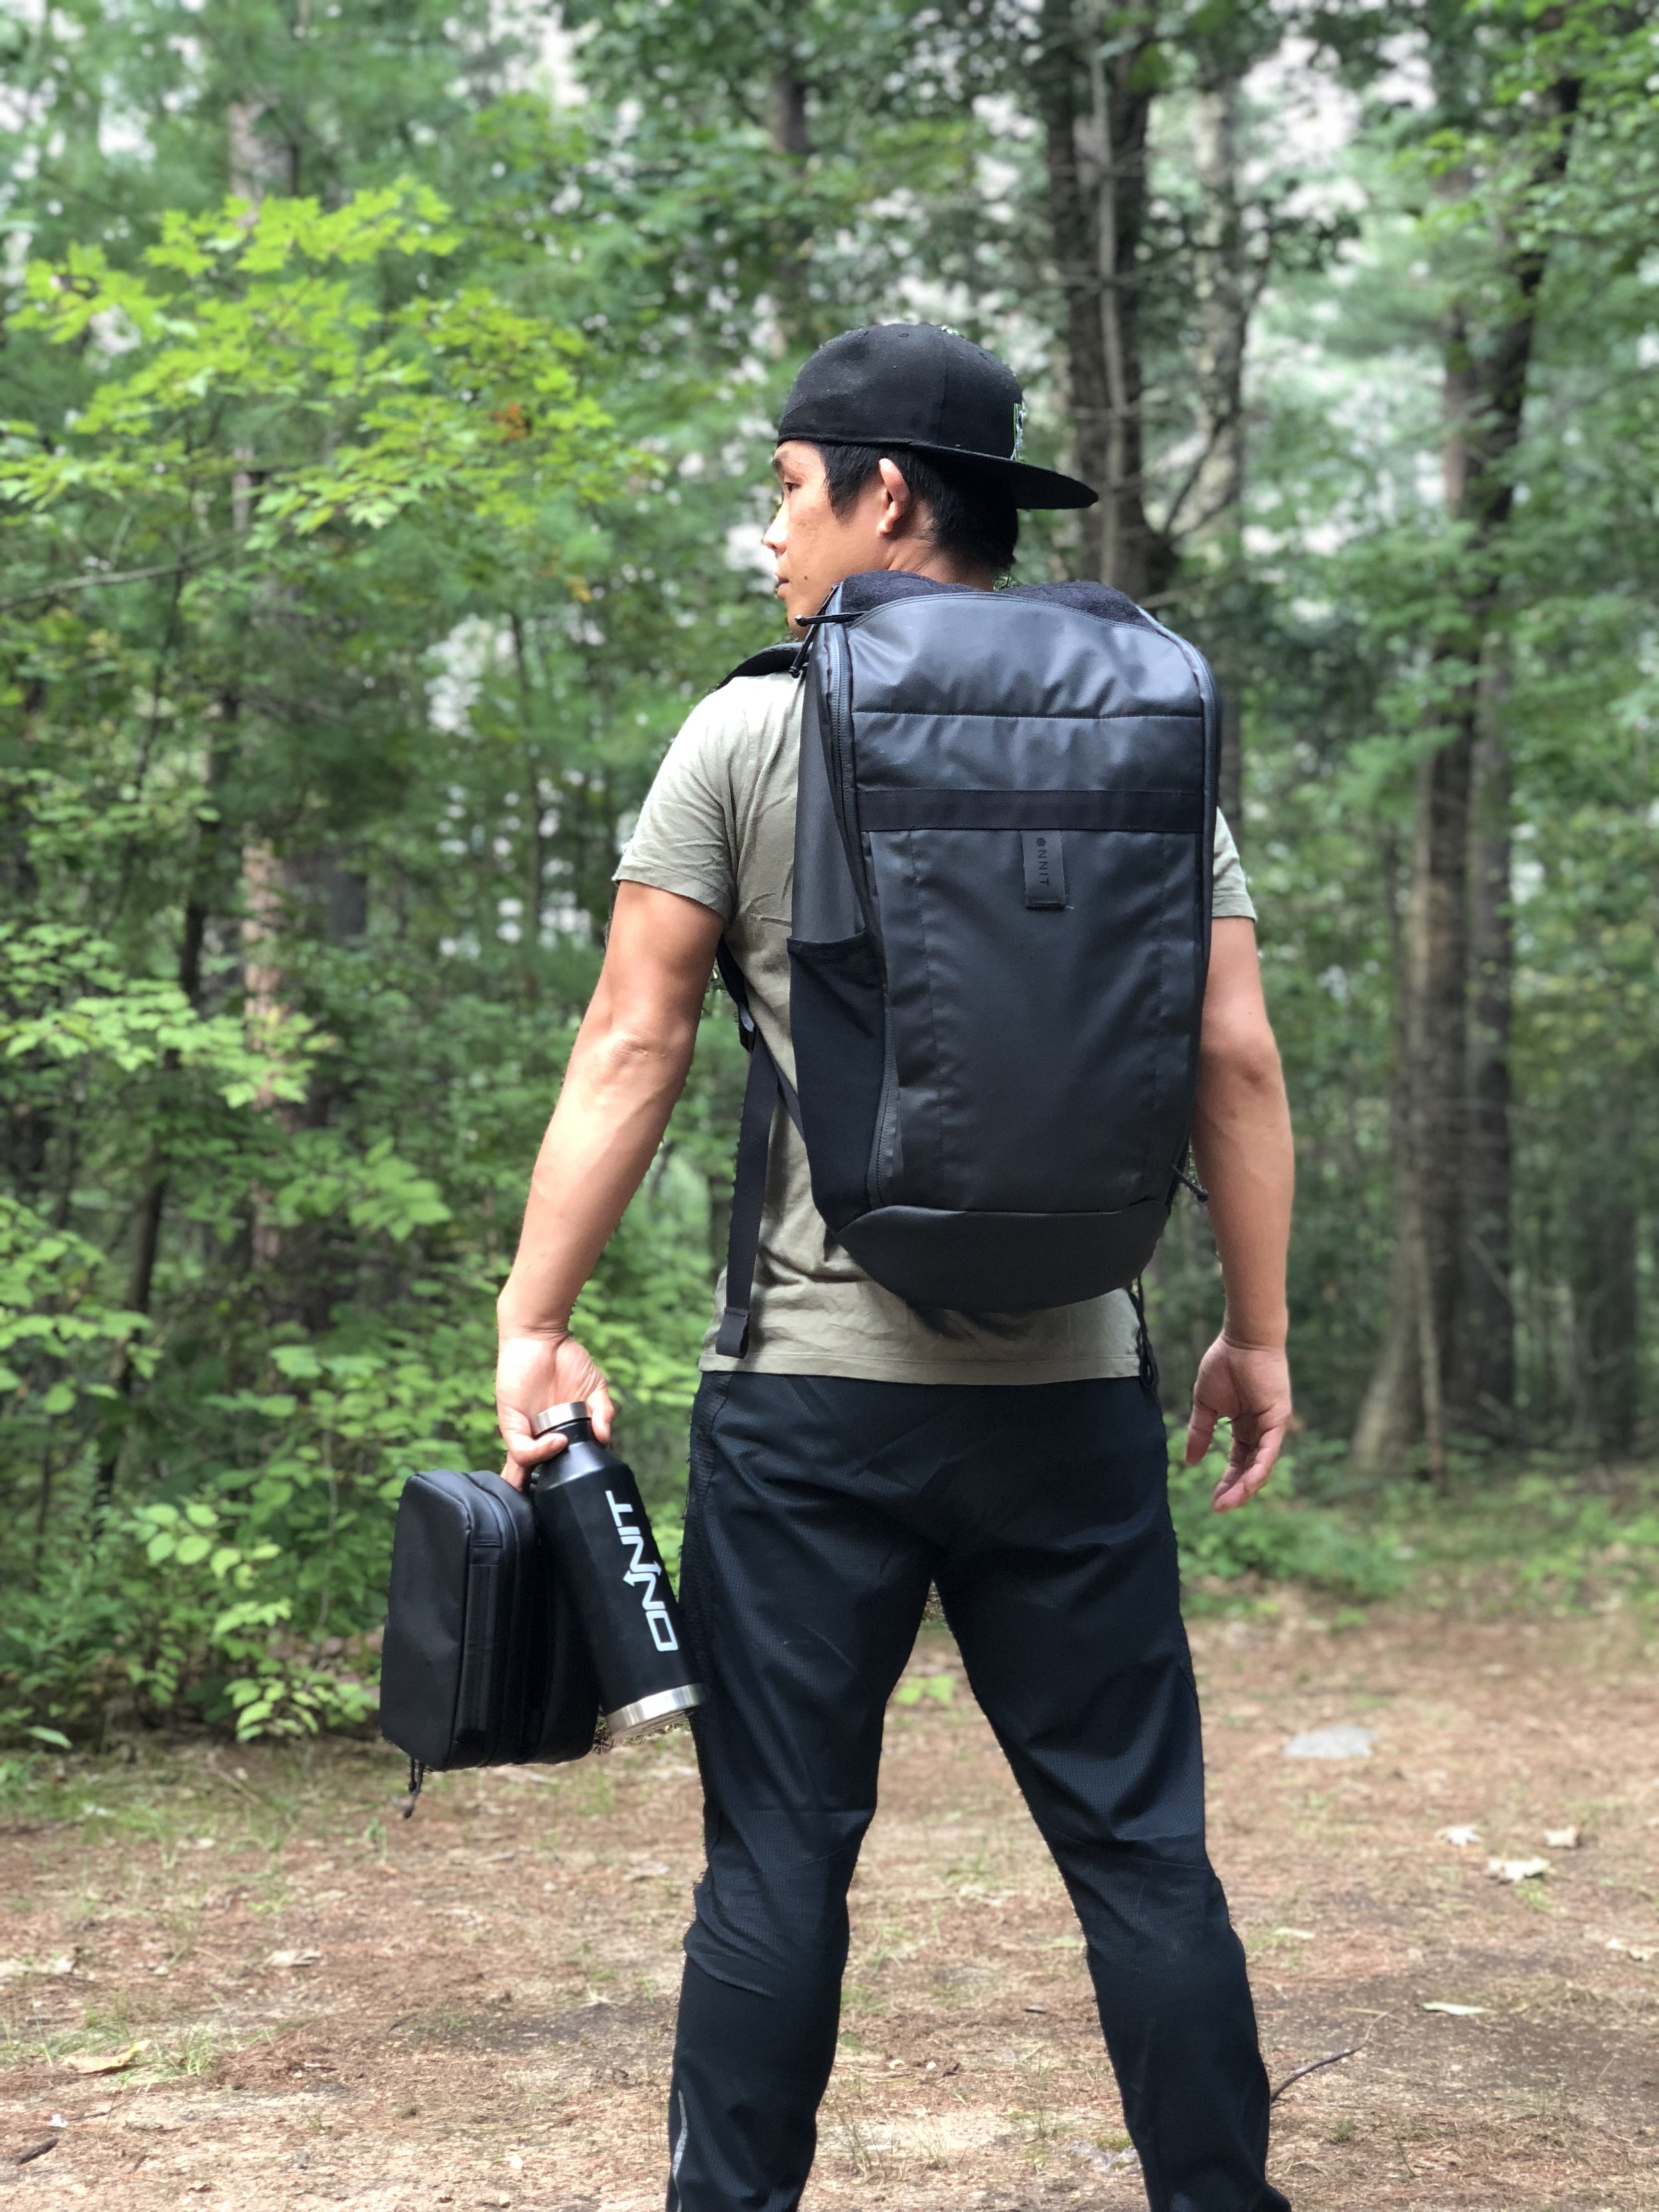 Division Daypack  It's time for an upgrade. Fabricated with care from intensely durable nylon. Water and abrasion resistant. Adventure ready.